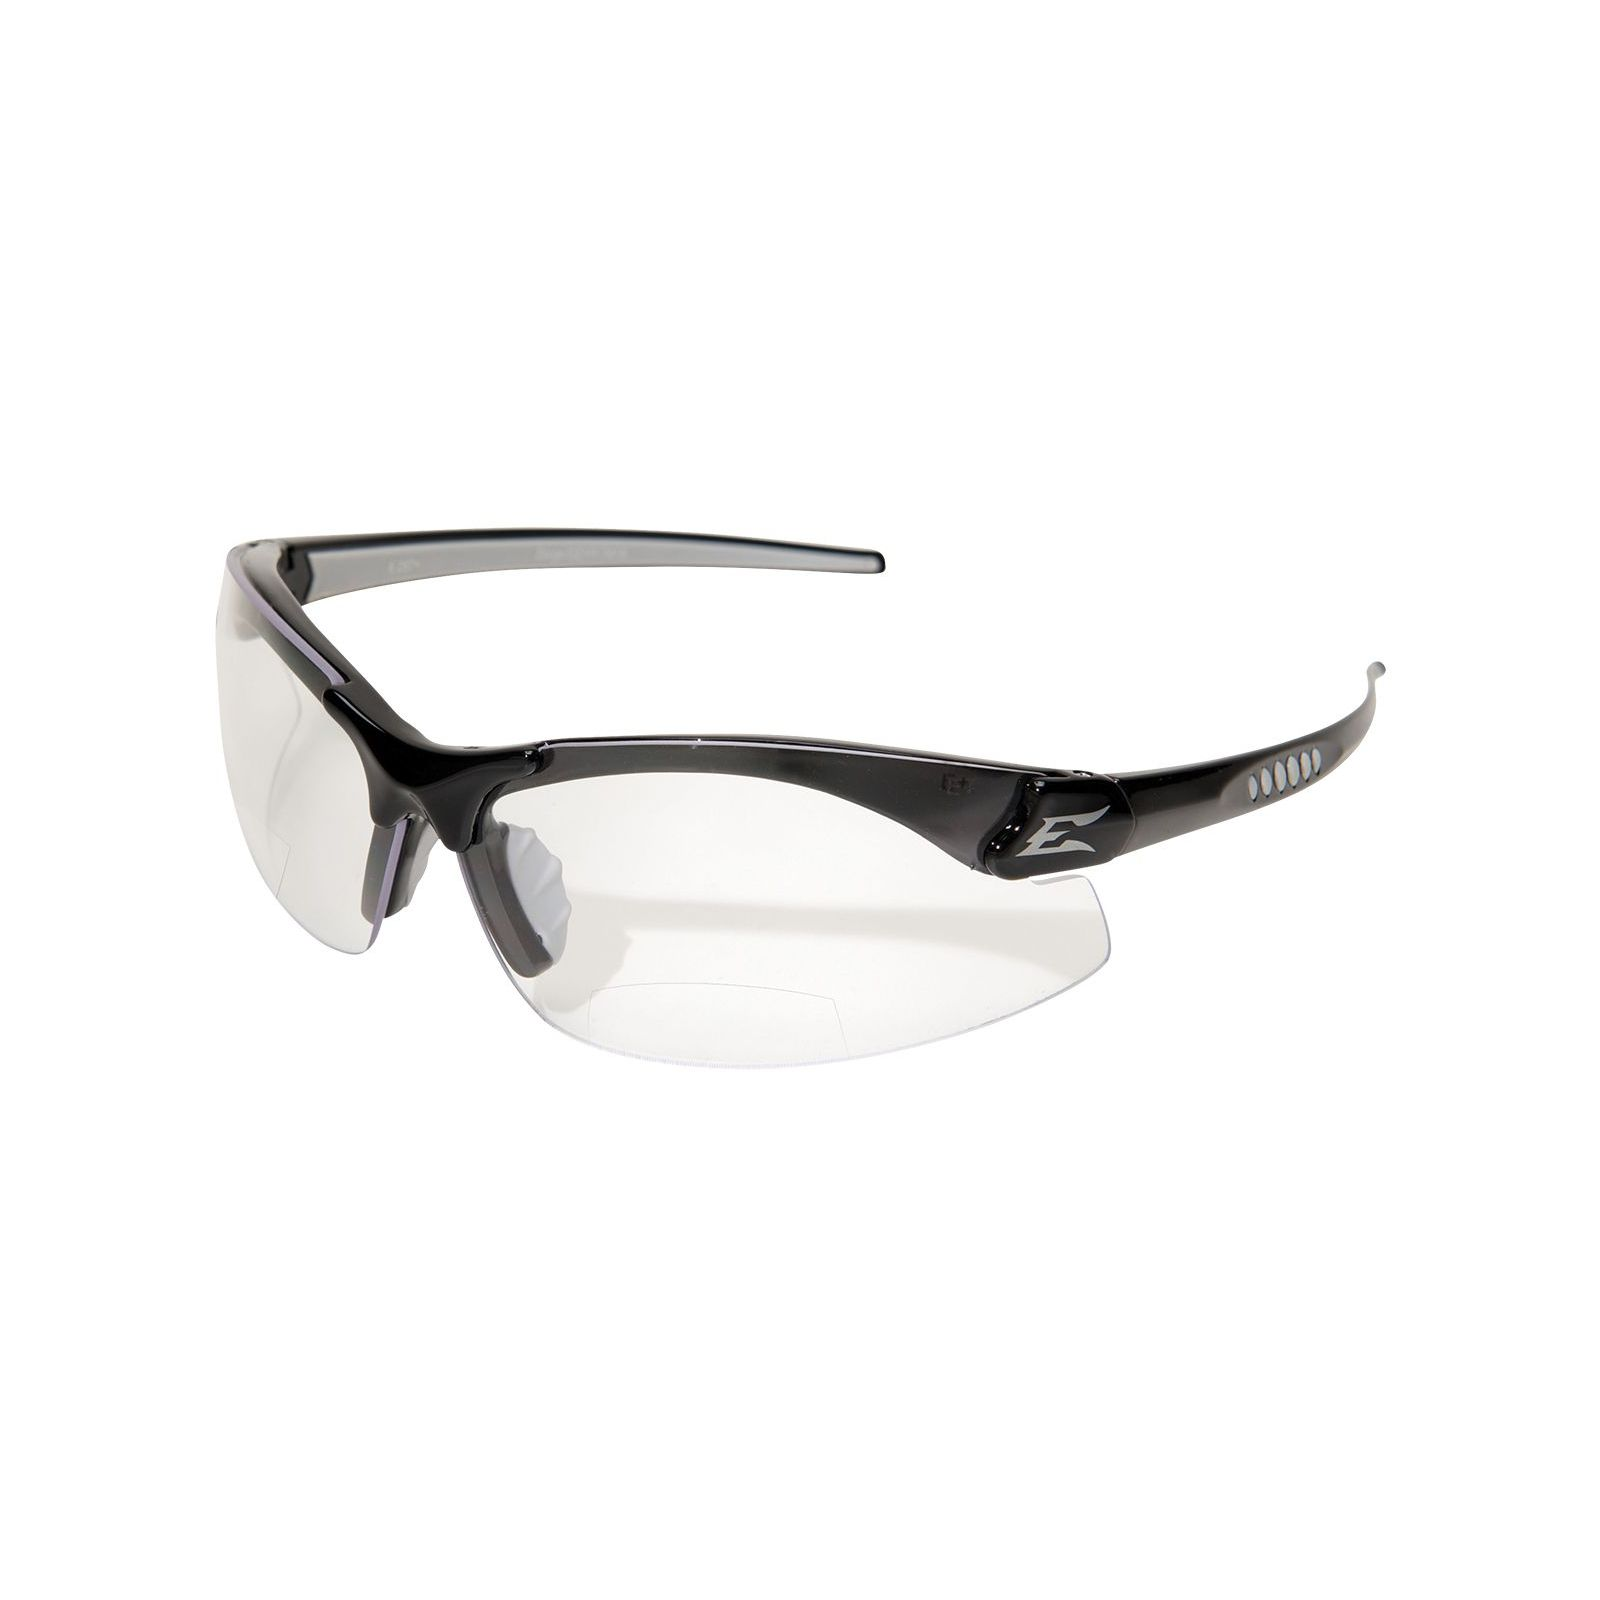 Wolf Peak DZ111-2.0 -   Safety Glasses - Zorge Magnifier- Black/Clear Lens - 2.0 Magnification